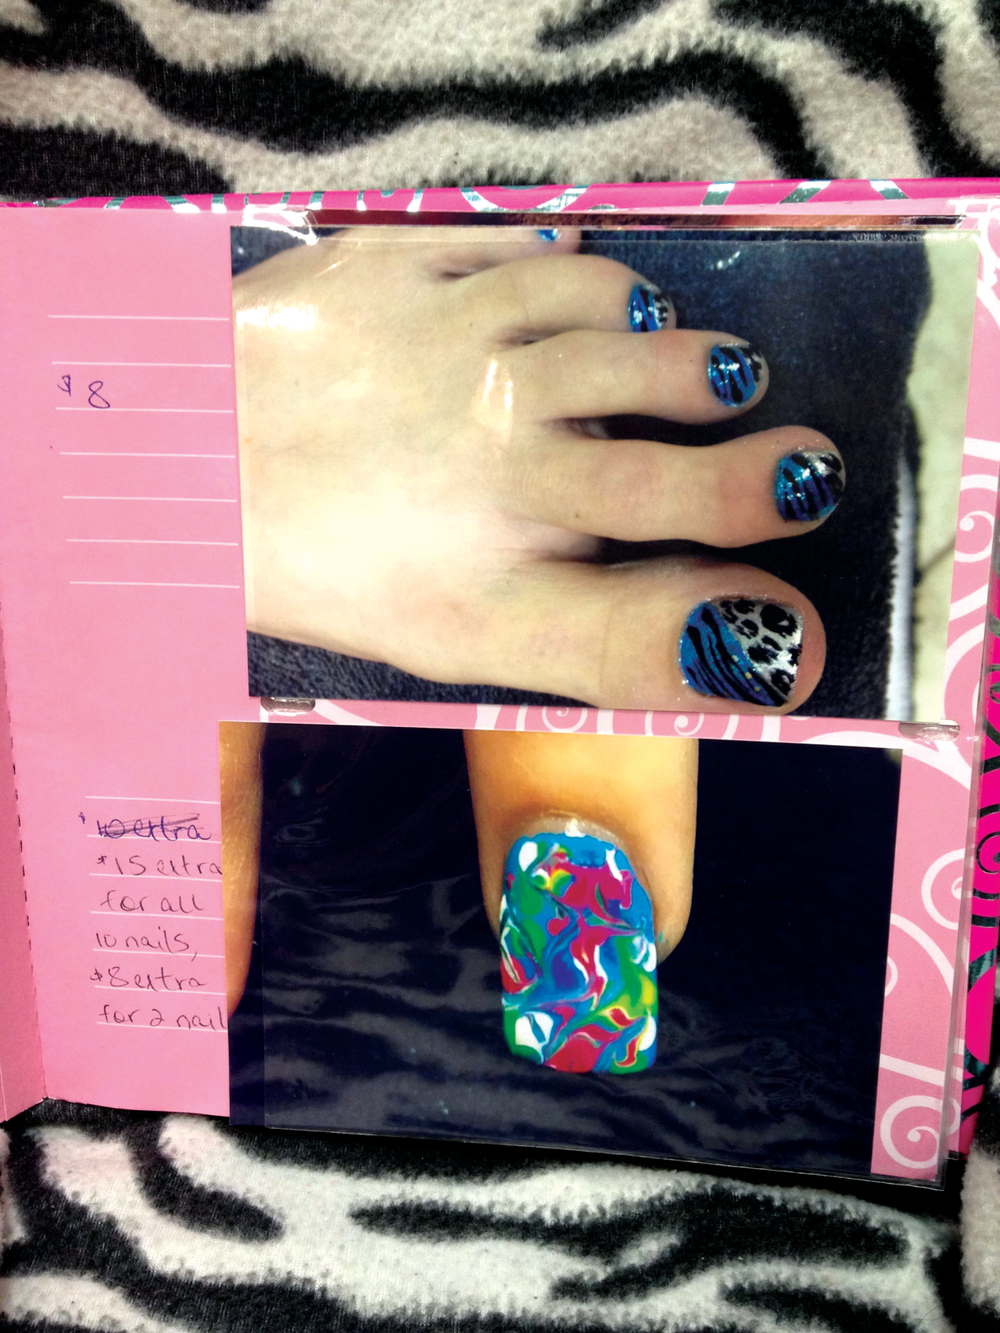 <p><strong>The Hen Shack, Abilene, Texas</strong></p> <p>&ldquo;I&rsquo;ve done nails for eight years, and I just changed to a booth rental agreement in September. That&rsquo;s when I decided I should have my own nail art display to show off my work. I keep a cute photo album full of all of my designs for people to flip through at their appointment. The basic pricing is listed in the front of the photo album, then additional pricing is listed next to each photo if needed.&rdquo; &mdash; <em>Amy Landtroop</em></p>